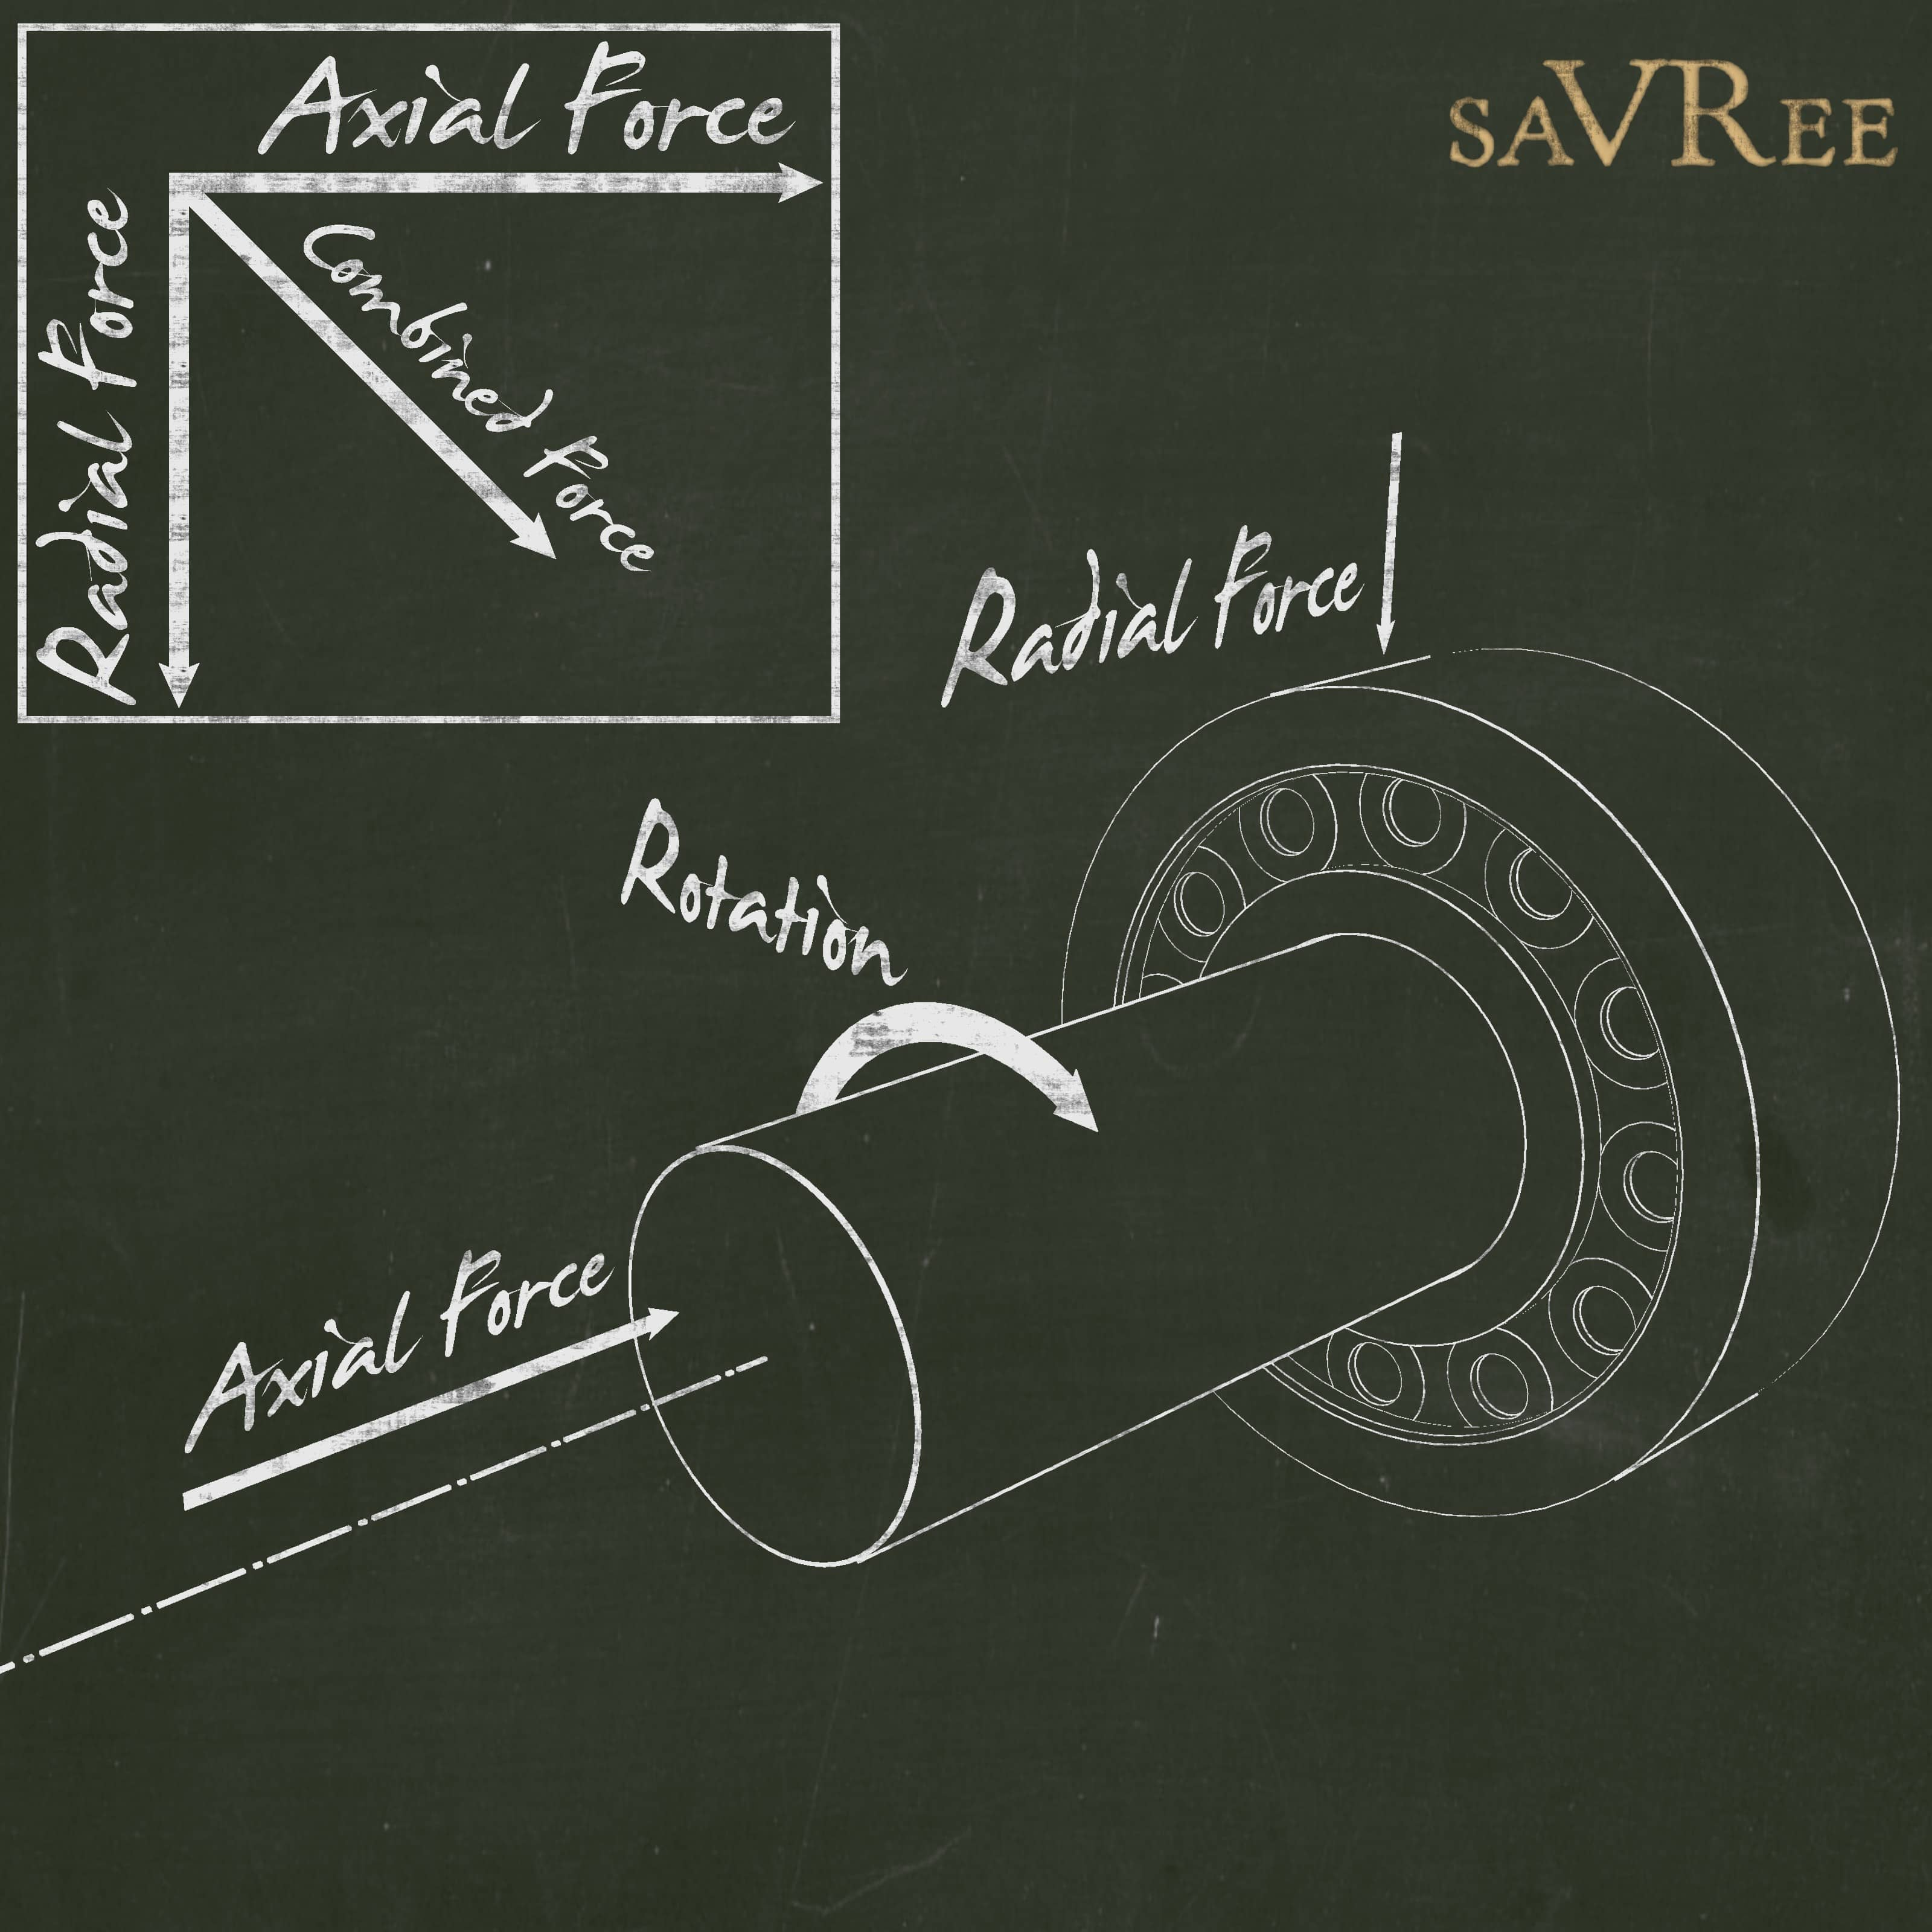 Axial and Radial Thrust